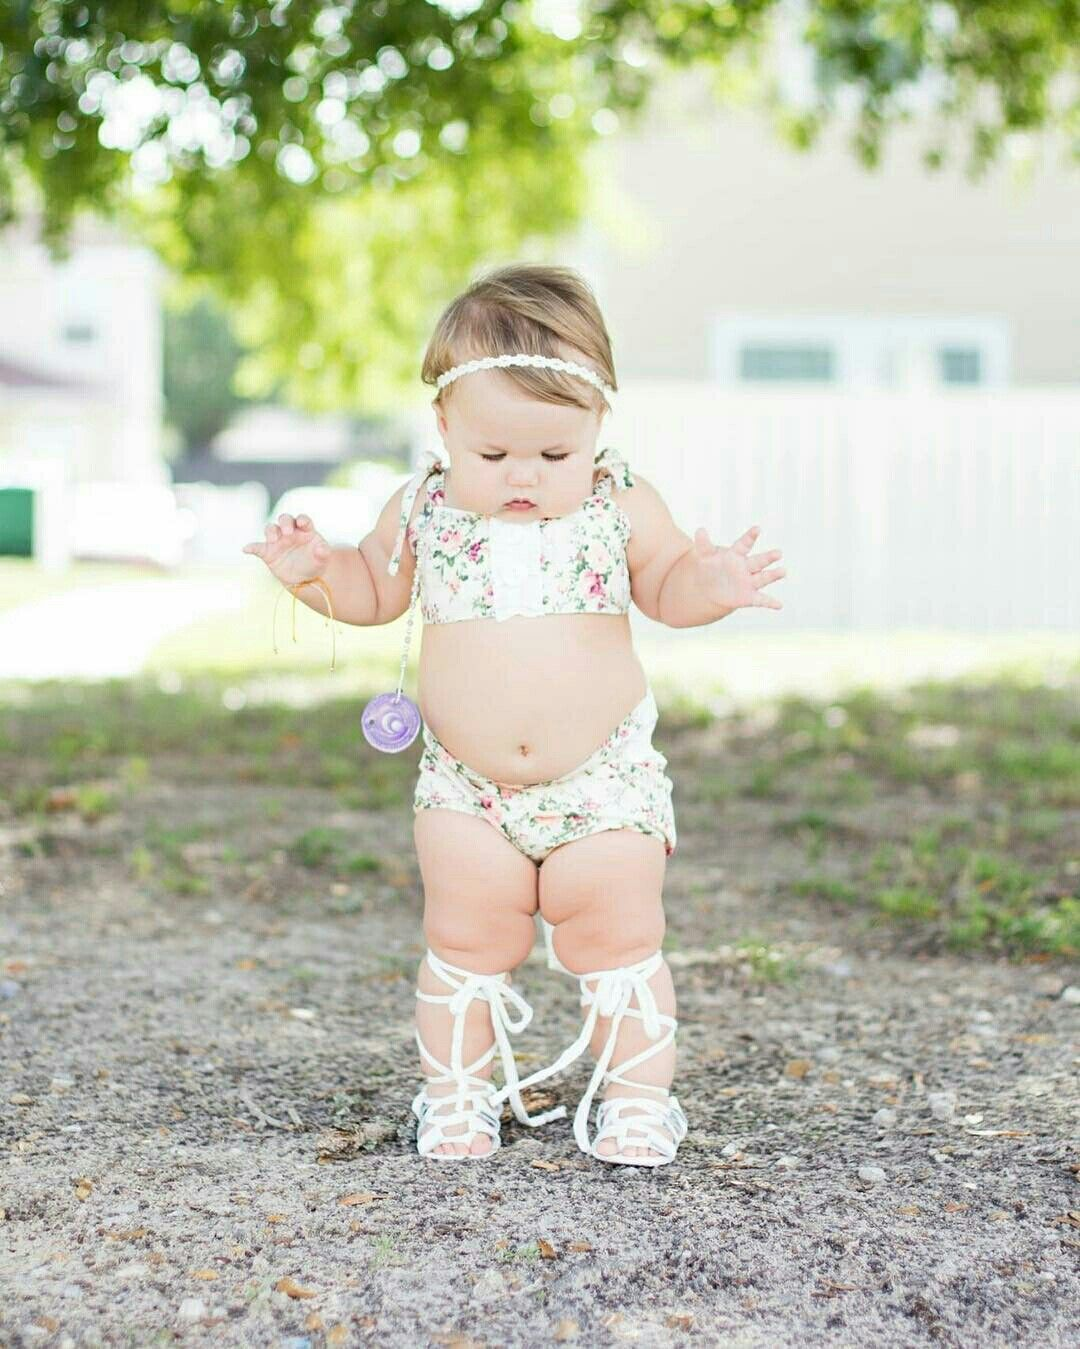 Chubby toddler clothes